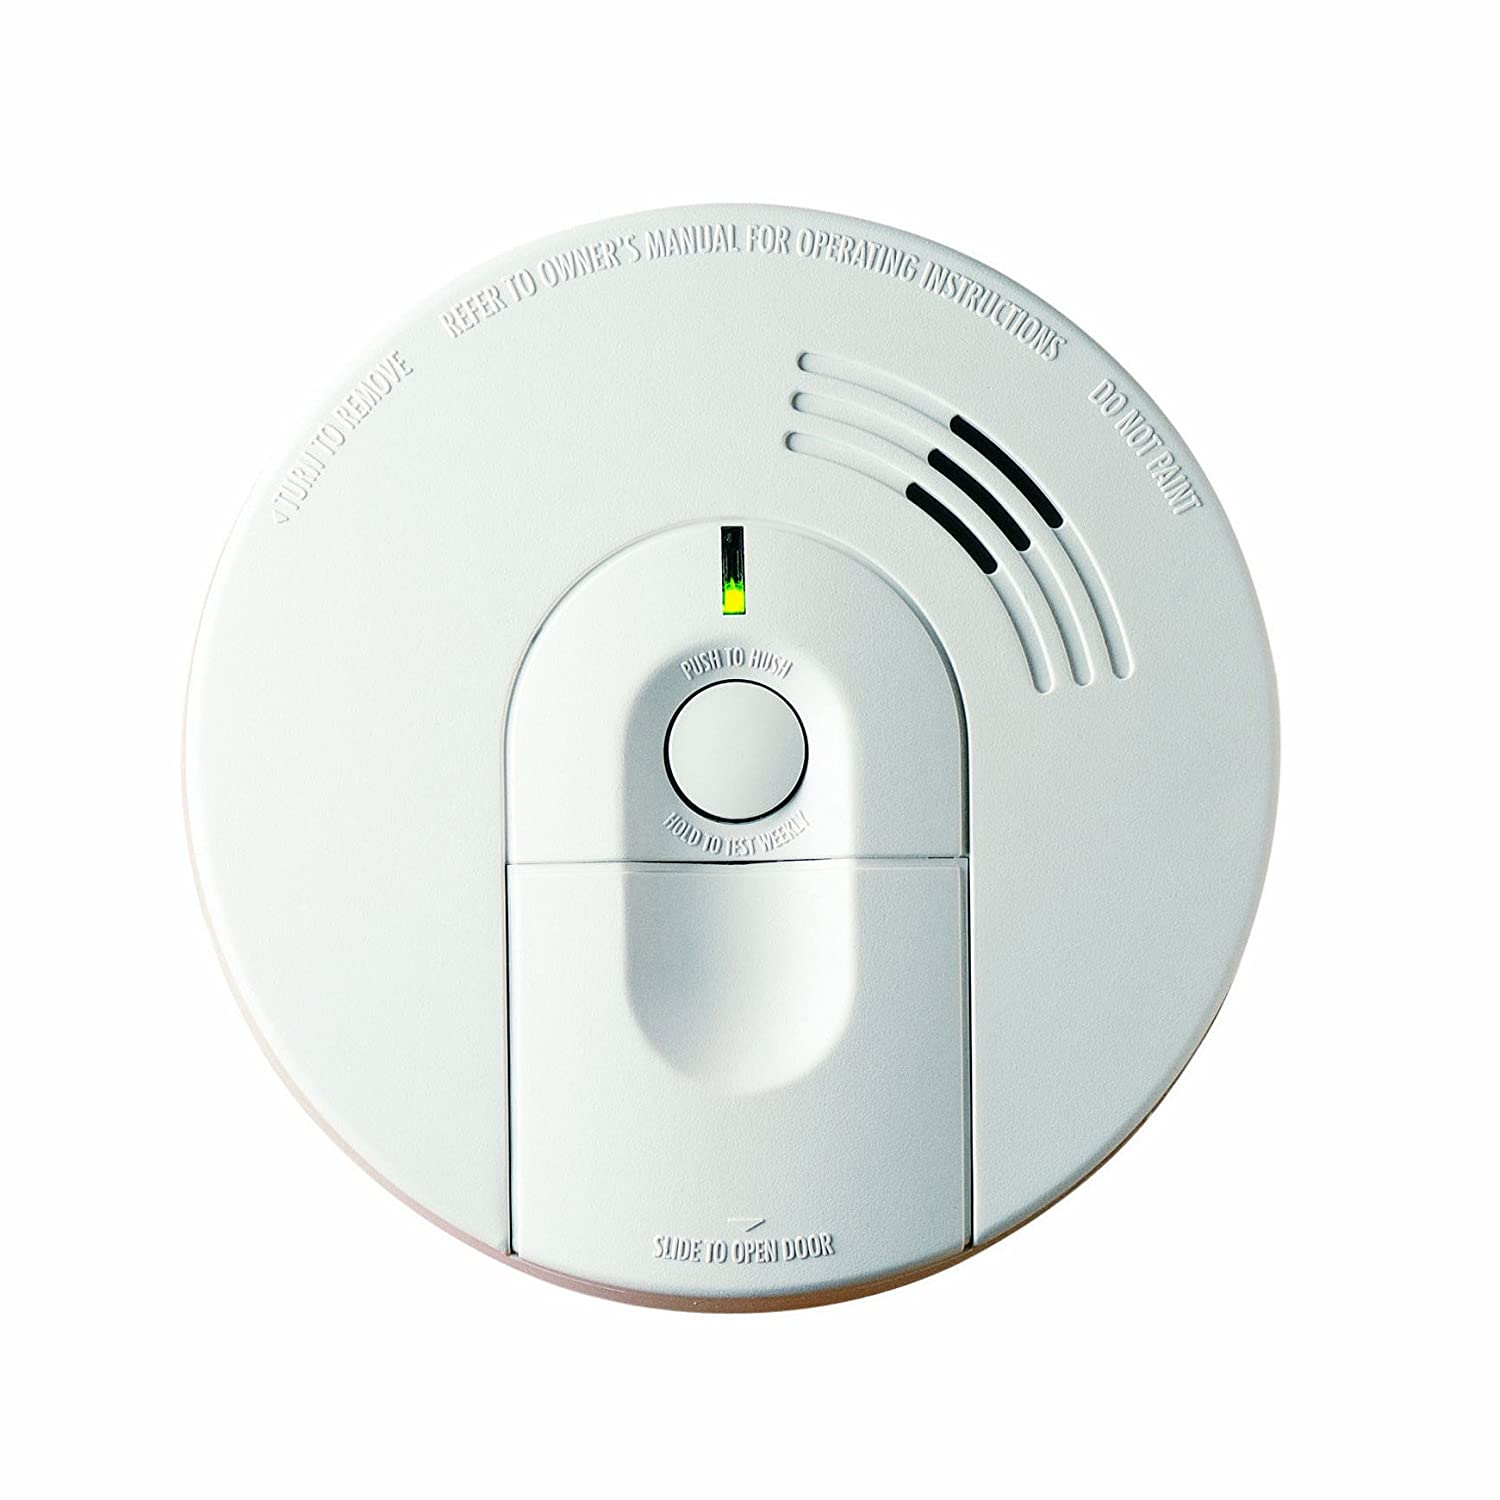 kidde firex hardwired smoke alarm i4618 smoke detectors amazon com rh amazon com Firex Smoke Alarm Instruction Manual Firex Smoke Alarm Instruction Manual